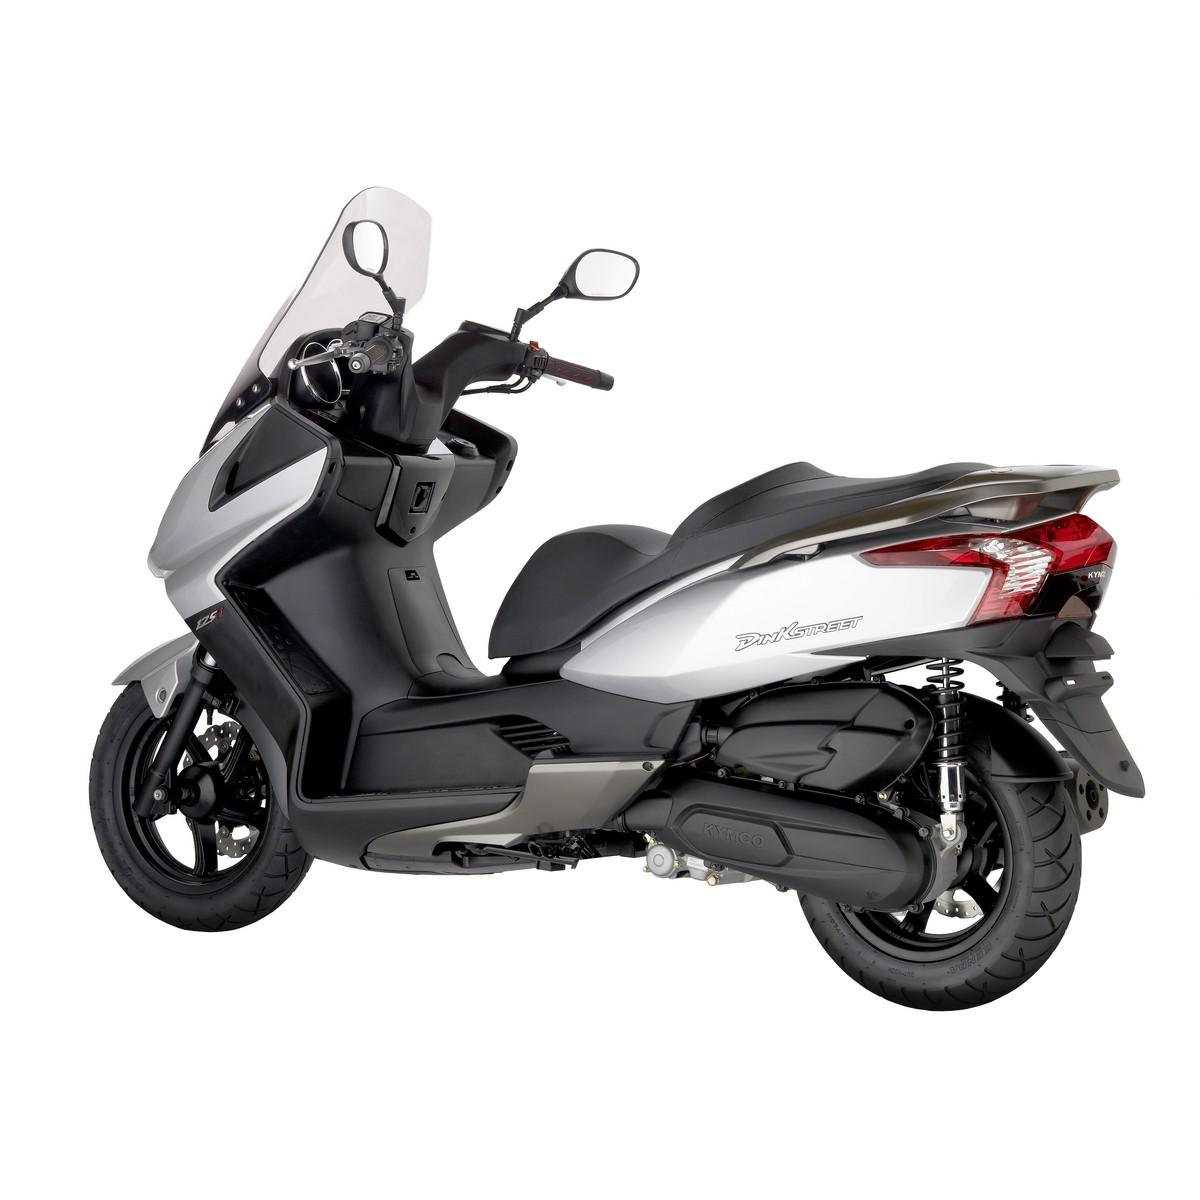 kymco 125cc dink street tra mare e monti locations bateaux motos scooters randonn es quads. Black Bedroom Furniture Sets. Home Design Ideas